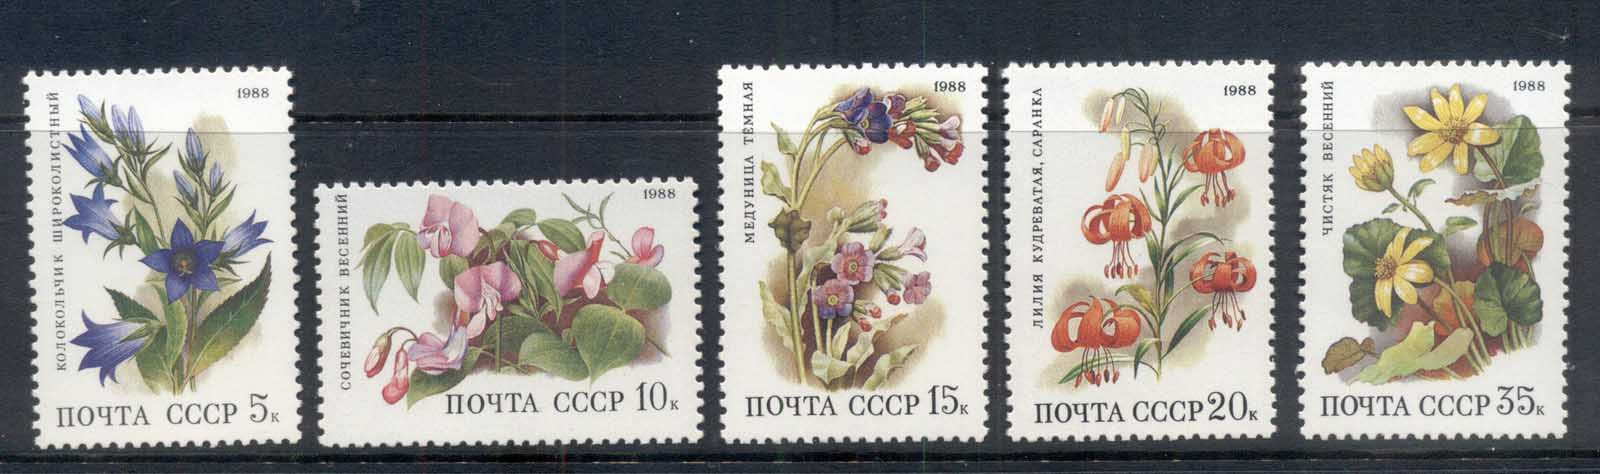 Russia 1988 Flowers Populating Deciduous Forests MUH